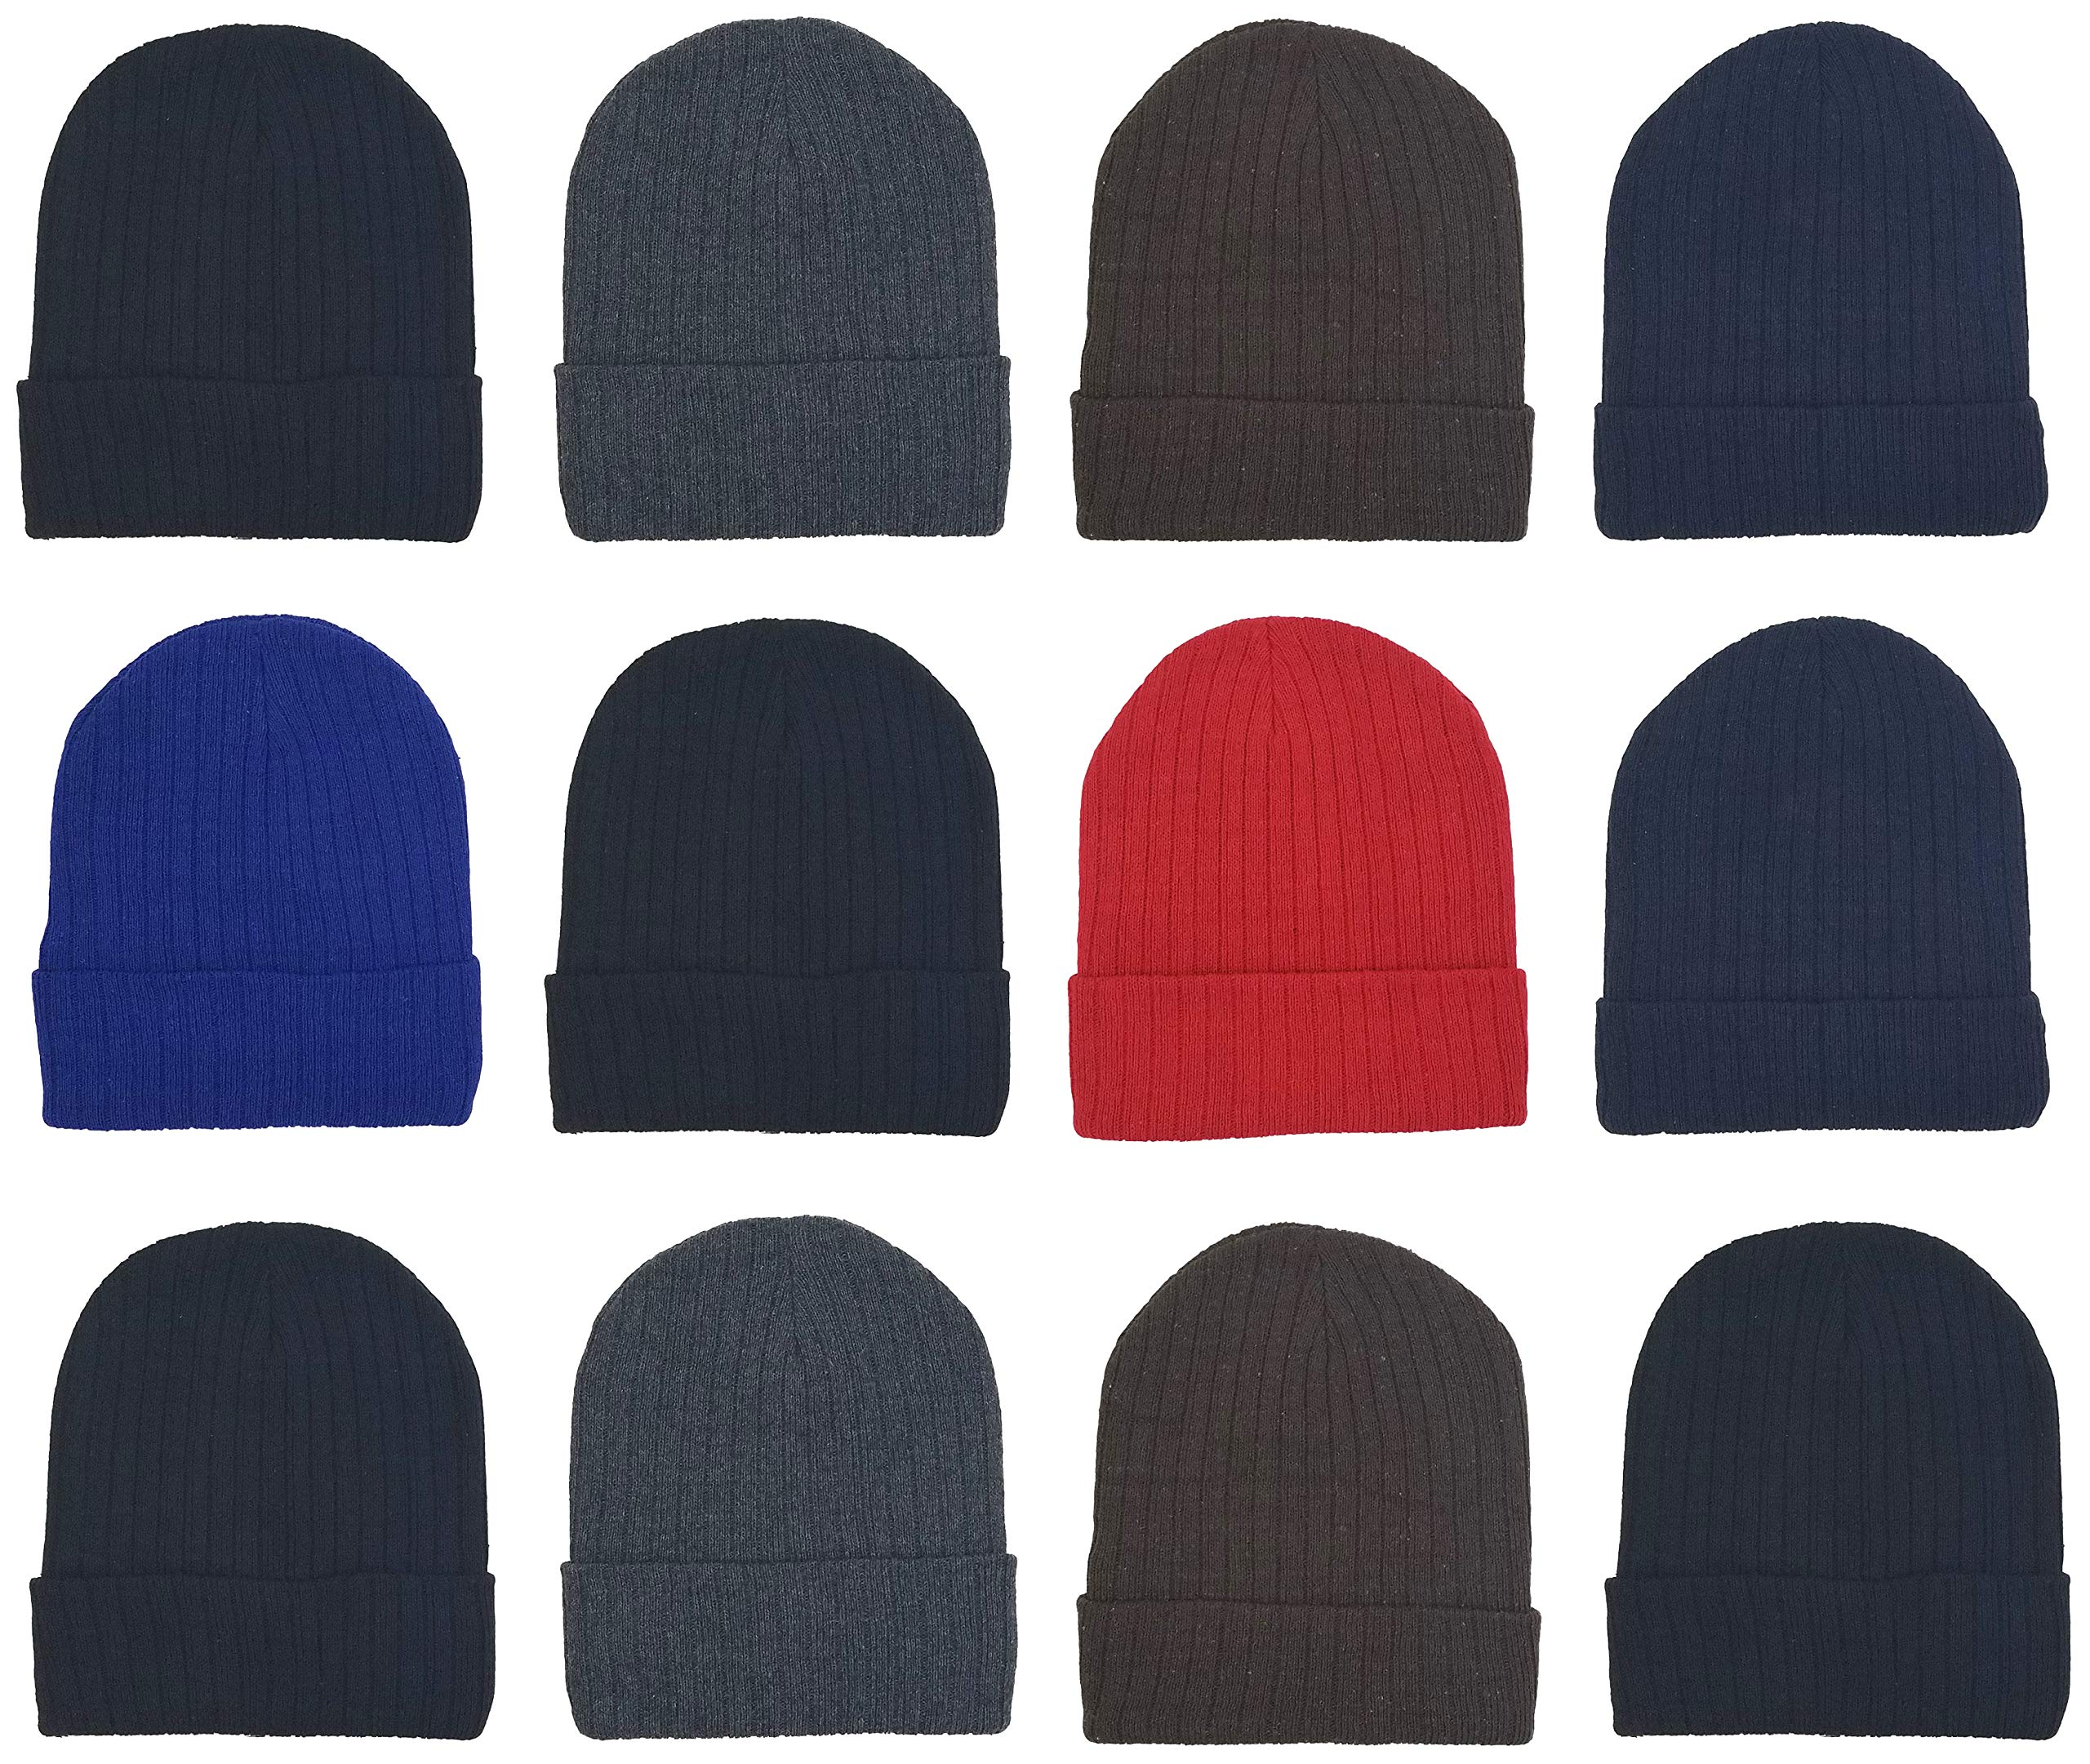 12 Pack Winter Beanies, Unisex, Warm Cozy Hats Foldover Cuffed Skull Cap (12 Pack Assorted Ribbed) by Winterlace